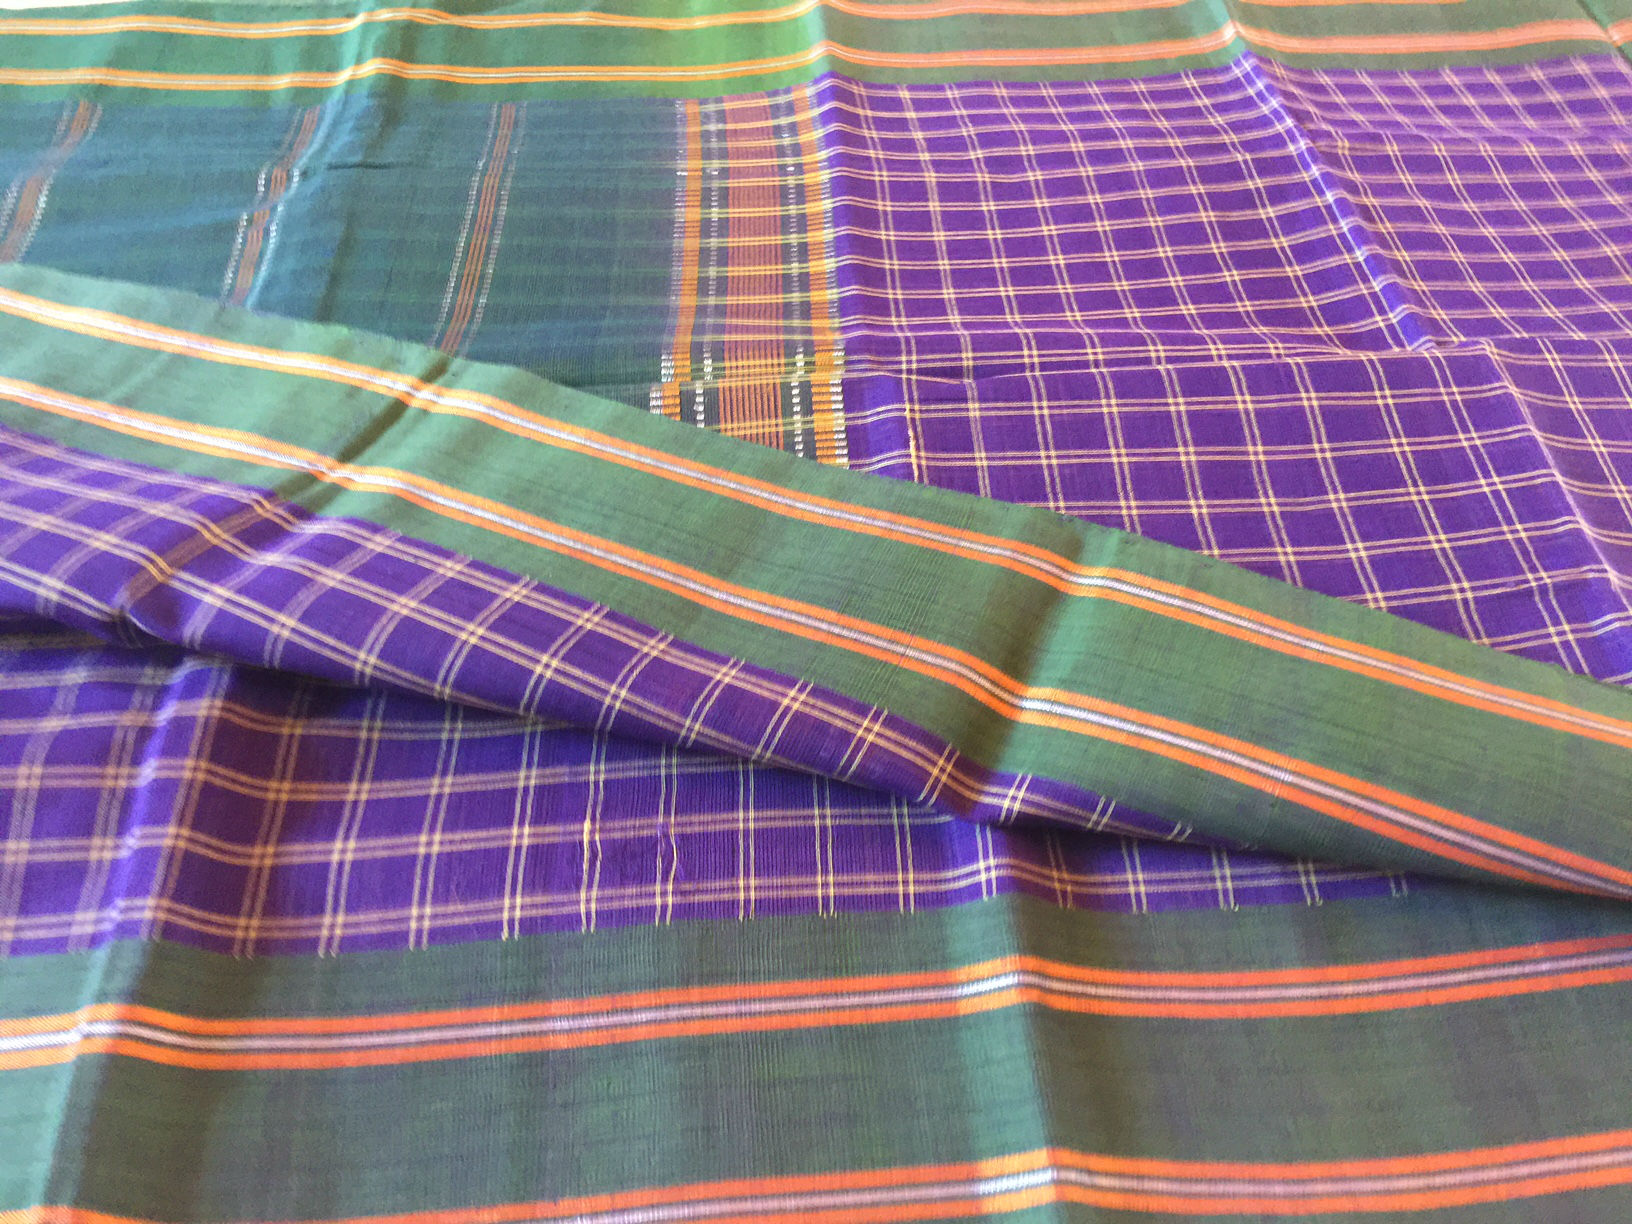 Udupi Purple and Green Handwoven Saree